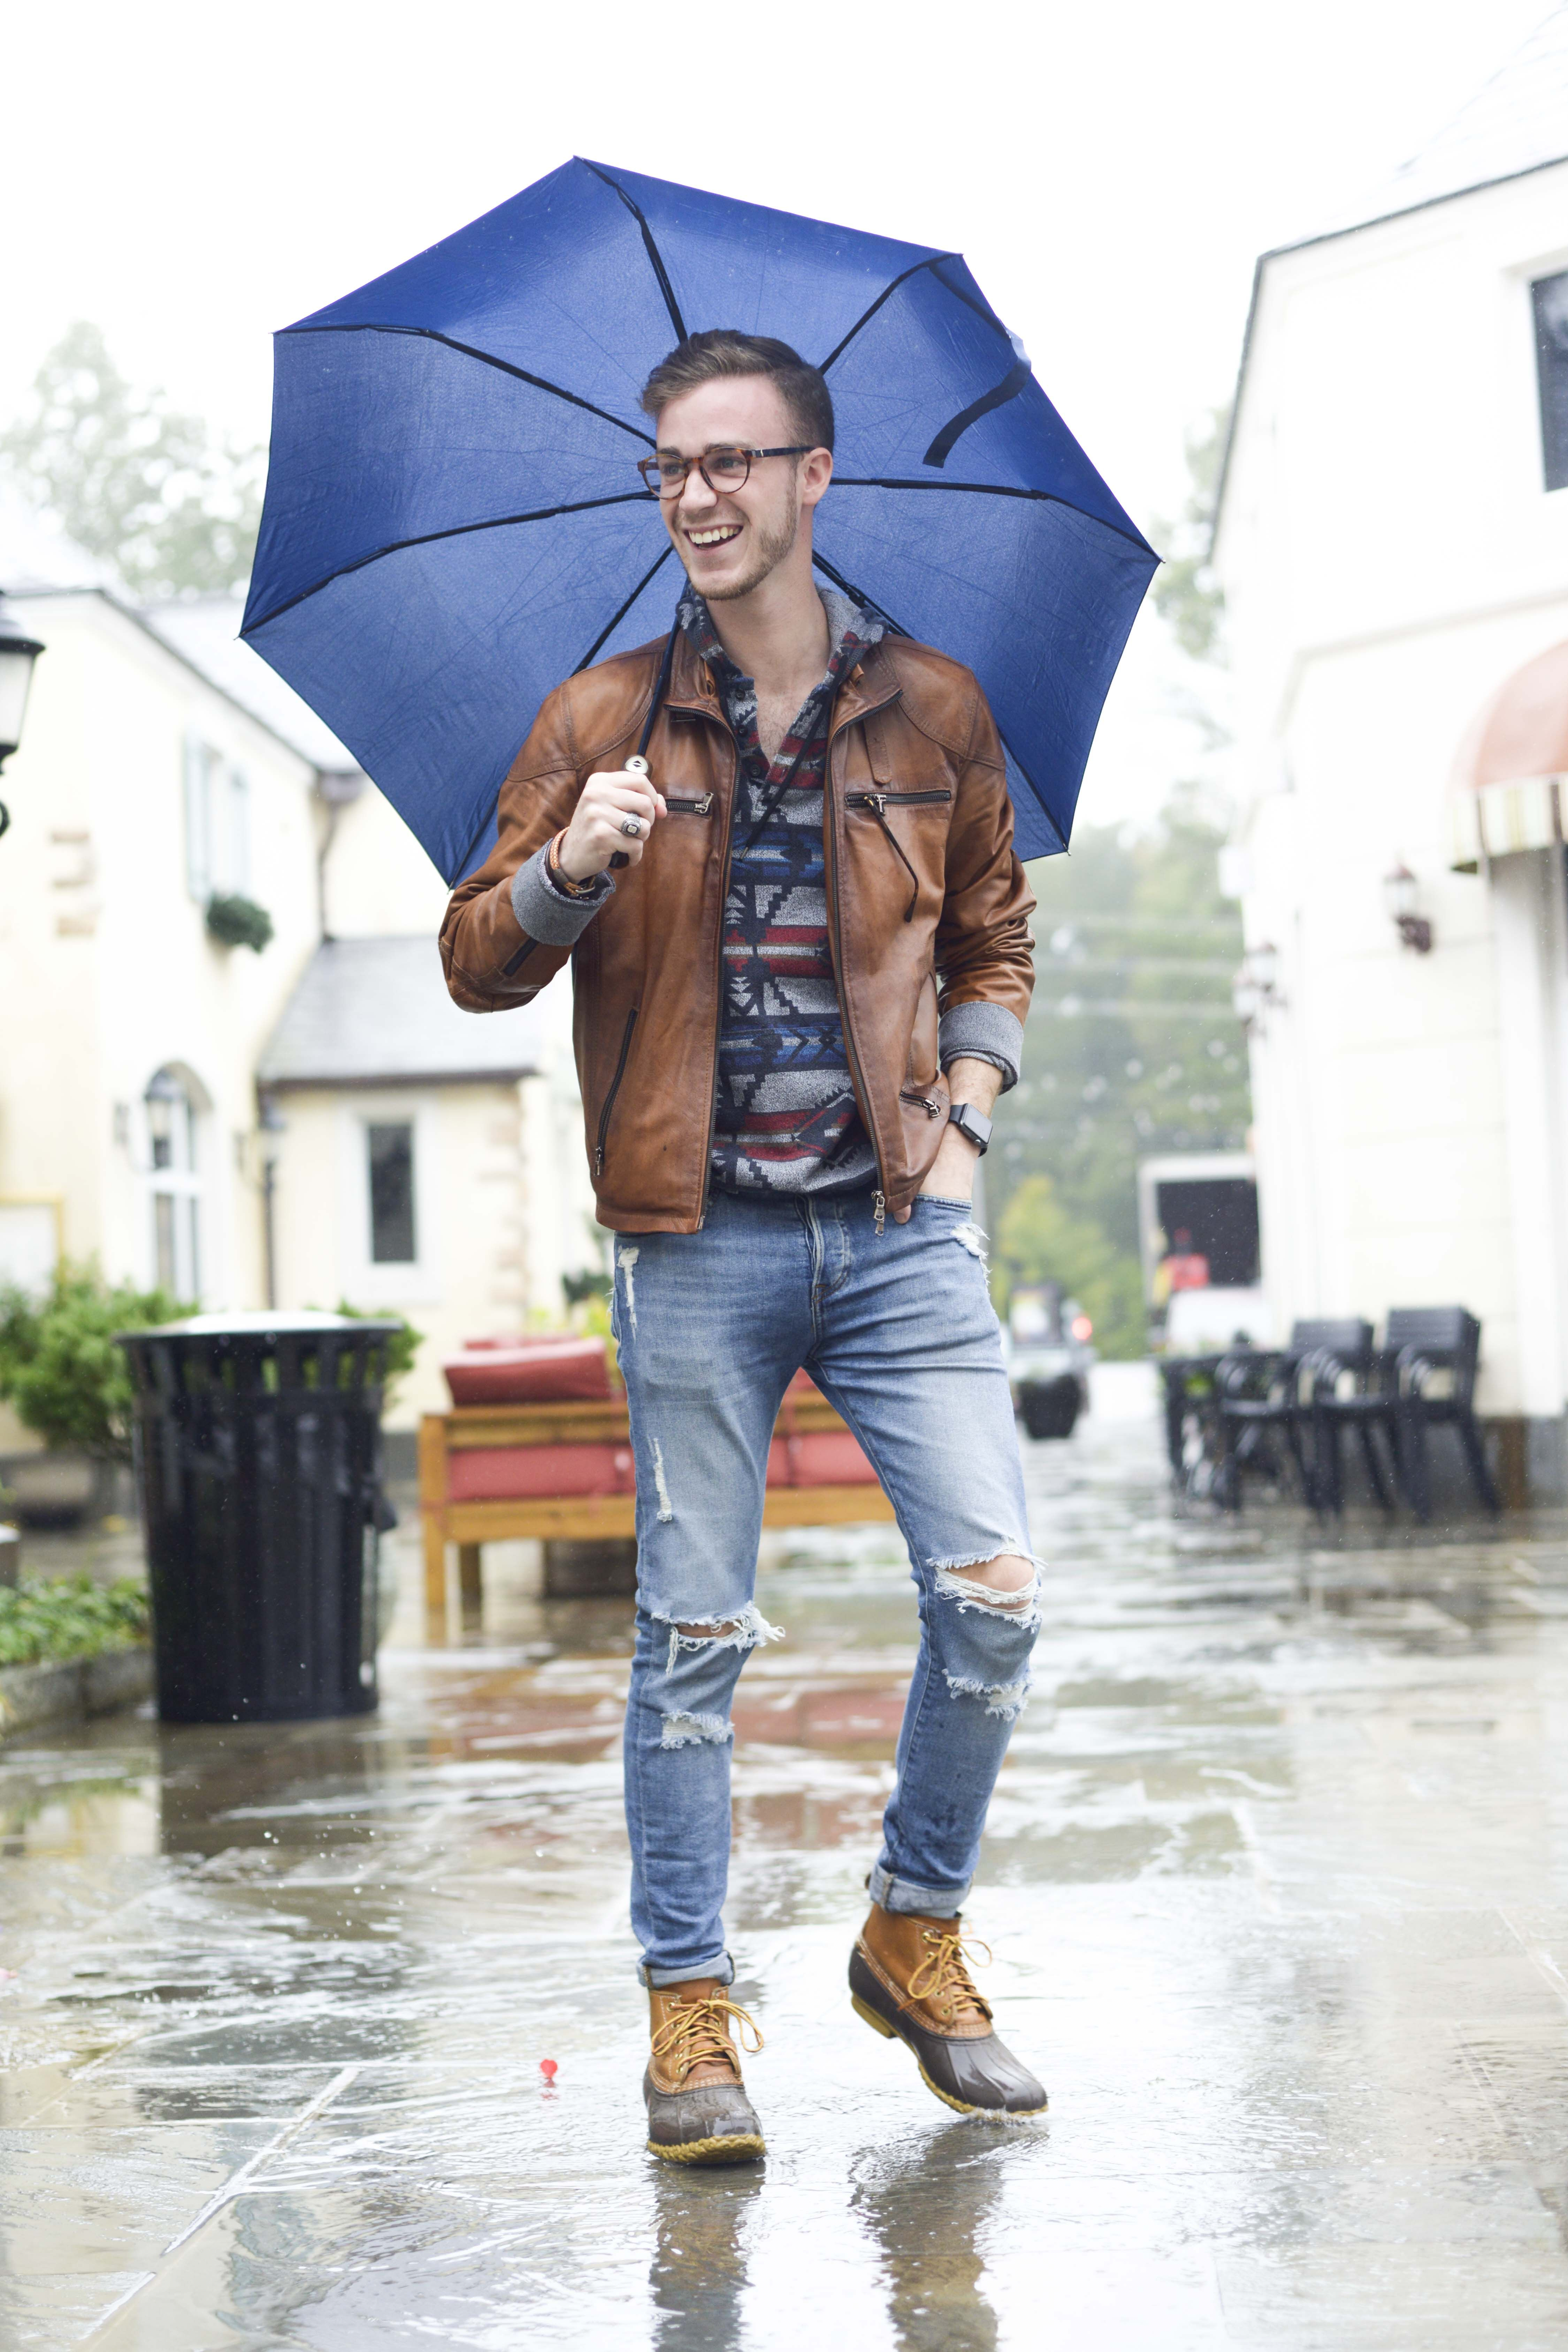 Rain Rainy Day Male Model Menu0026#39;s Fashion Duck Boots Leather Jacket Hoodie Distressed Jeans Outfit ...